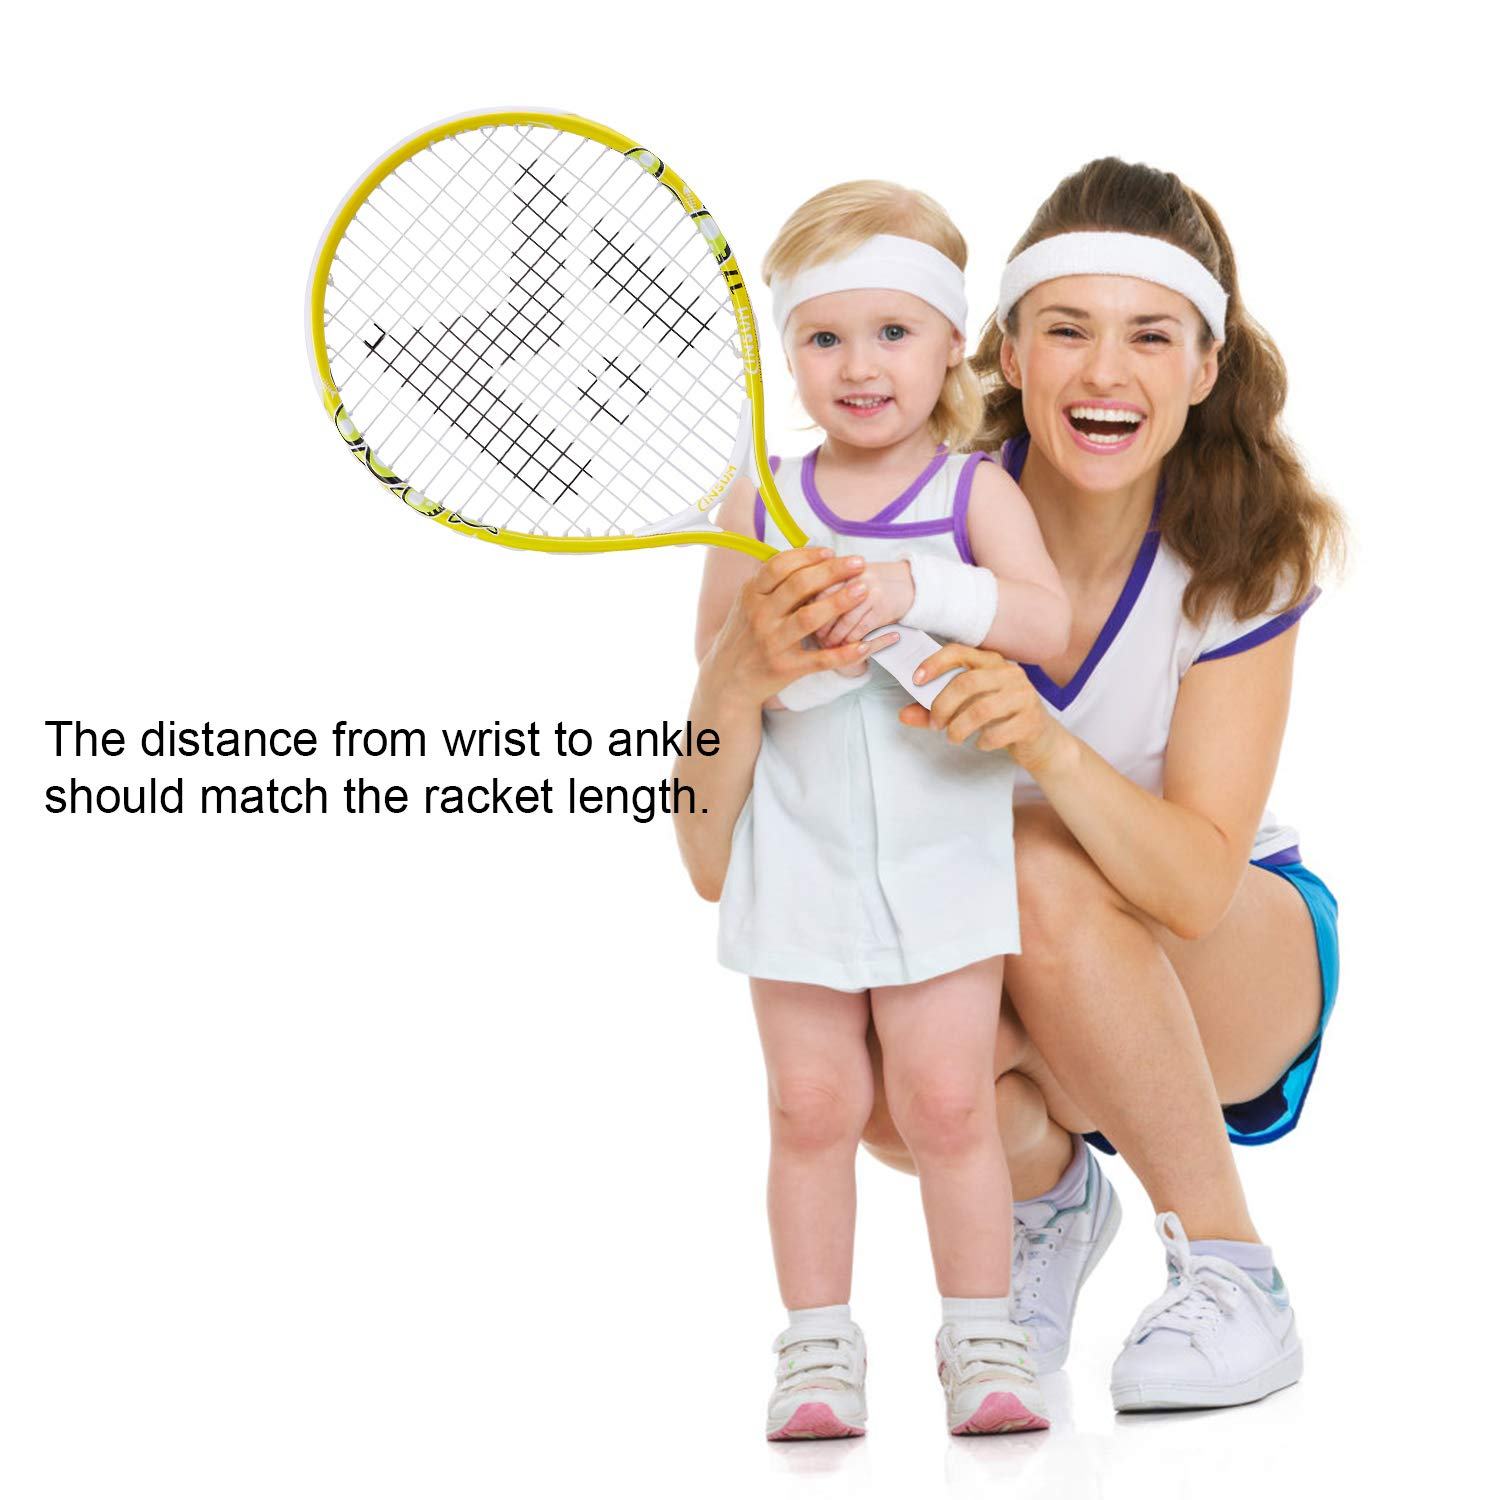 """Insum Junior Tennis Racquet of Childs Kids Starter Toddlers Tennis Racket 17-25/"""" Ages 2 to10 with Shoulder Strap Bag and brochure"""